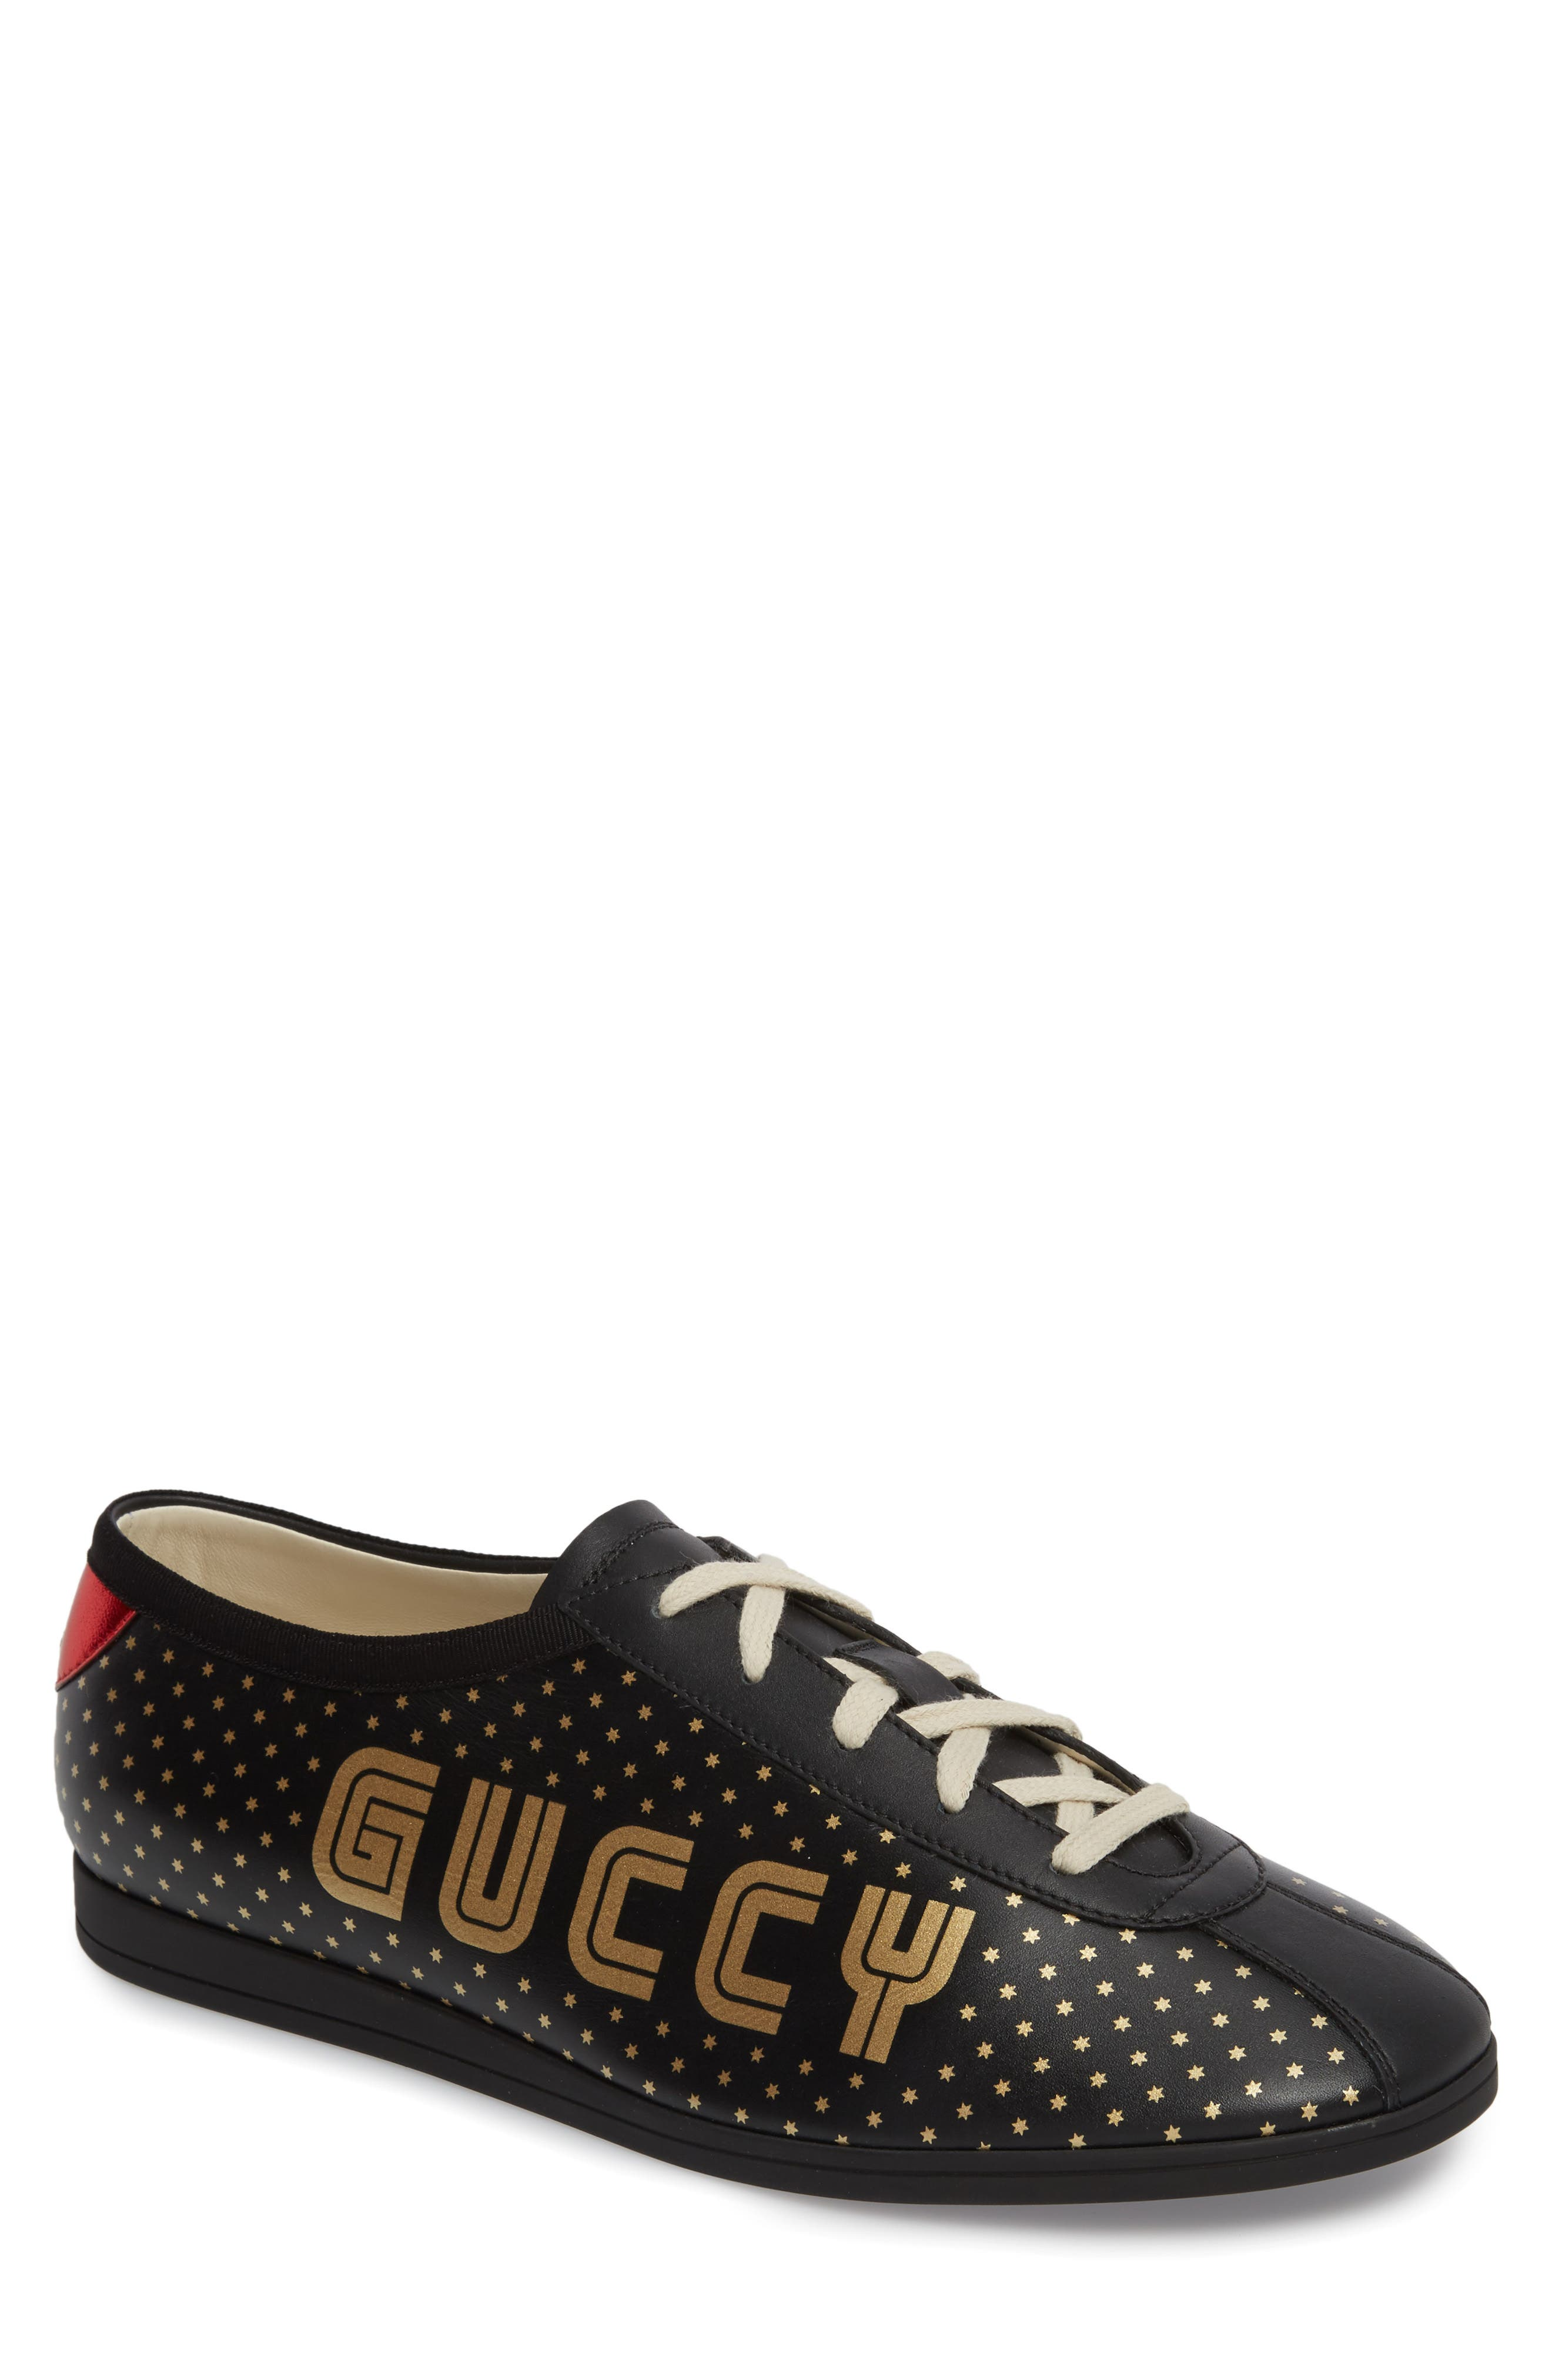 Falacer Guccy Print Sneaker,                         Main,                         color, 009